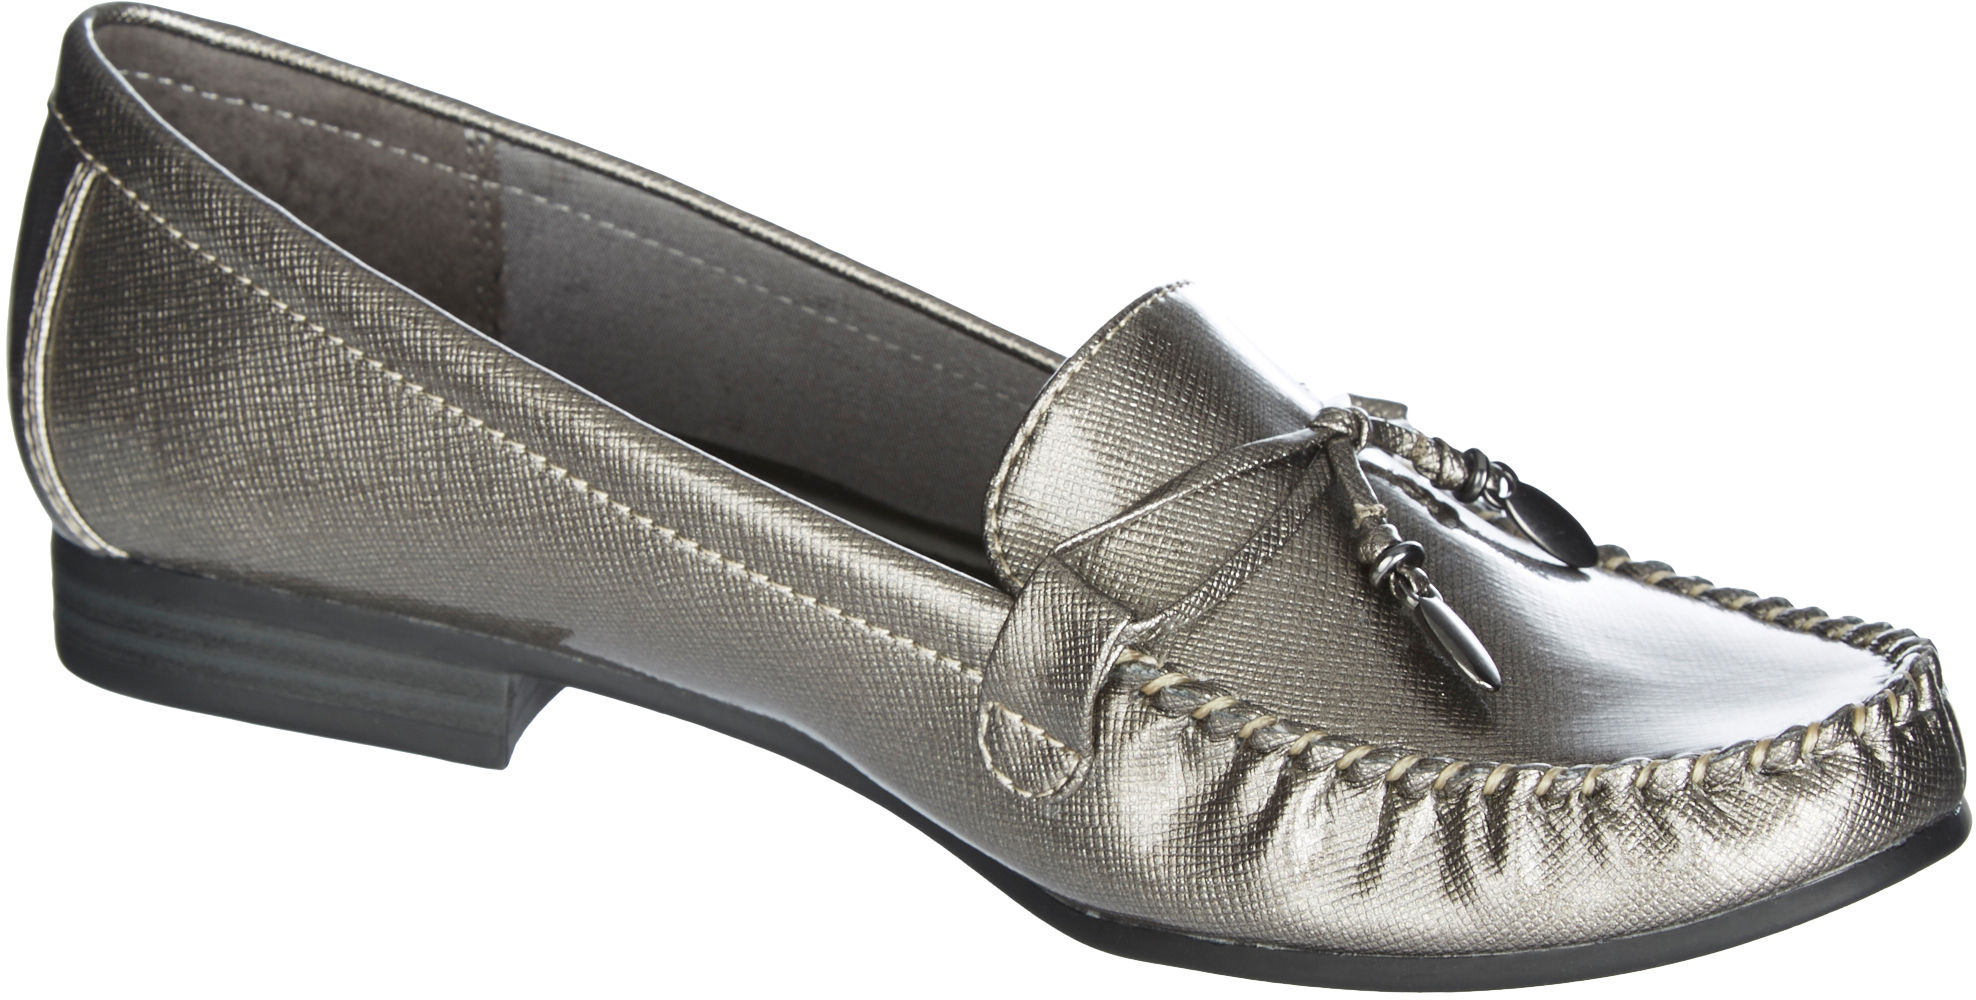 Bealls Womens Shoes